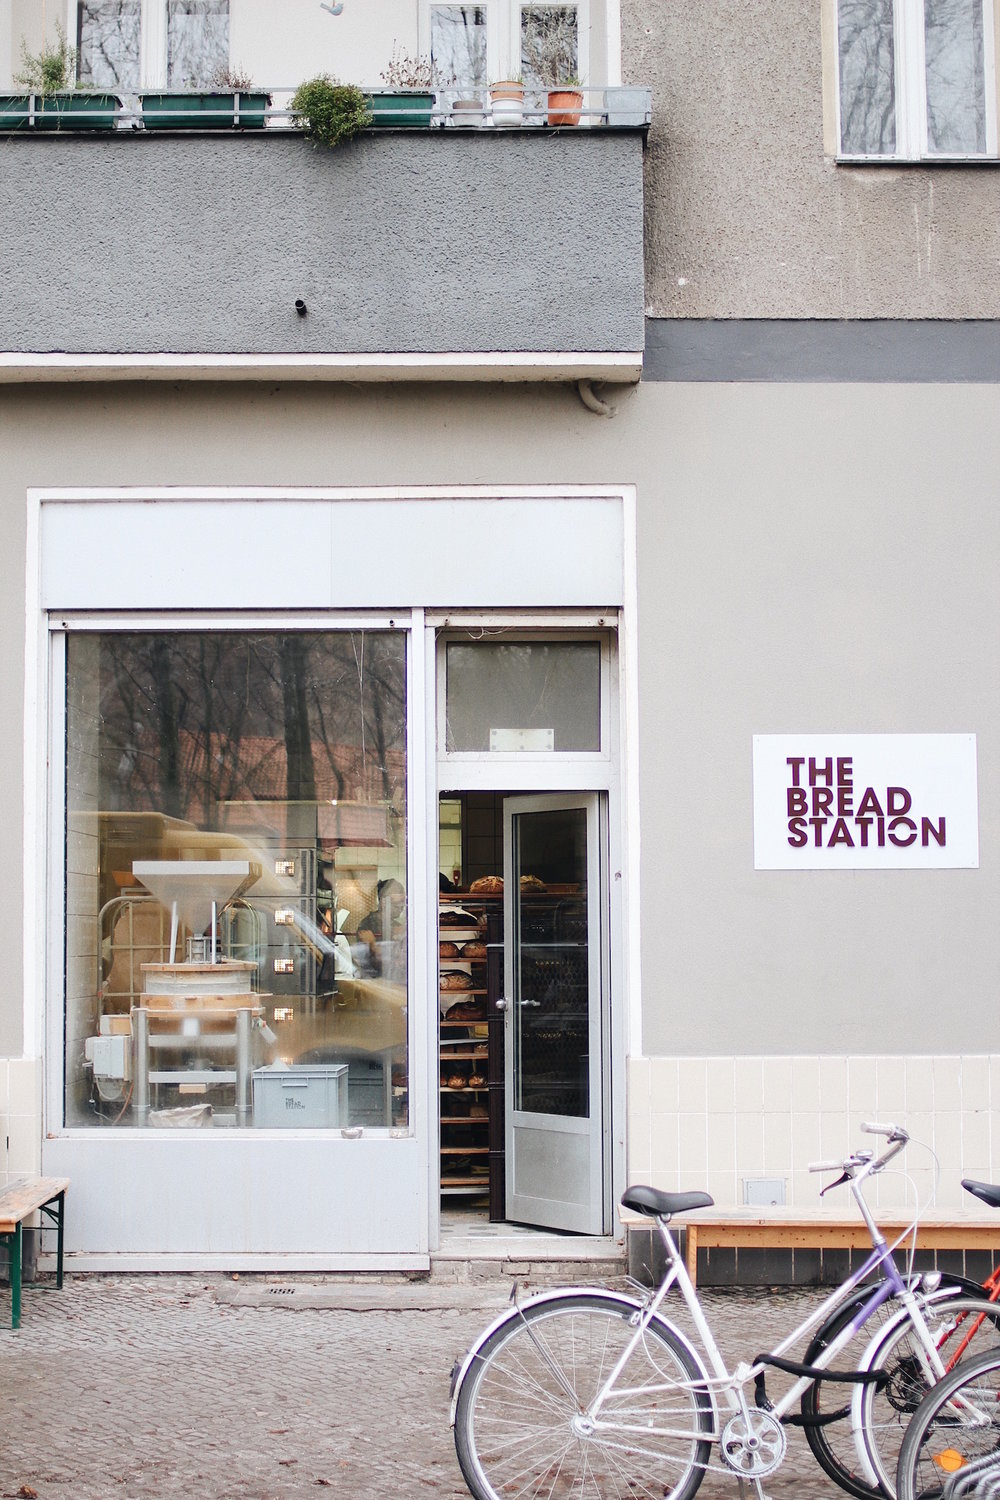 3. EAT | THE BREAD STATION